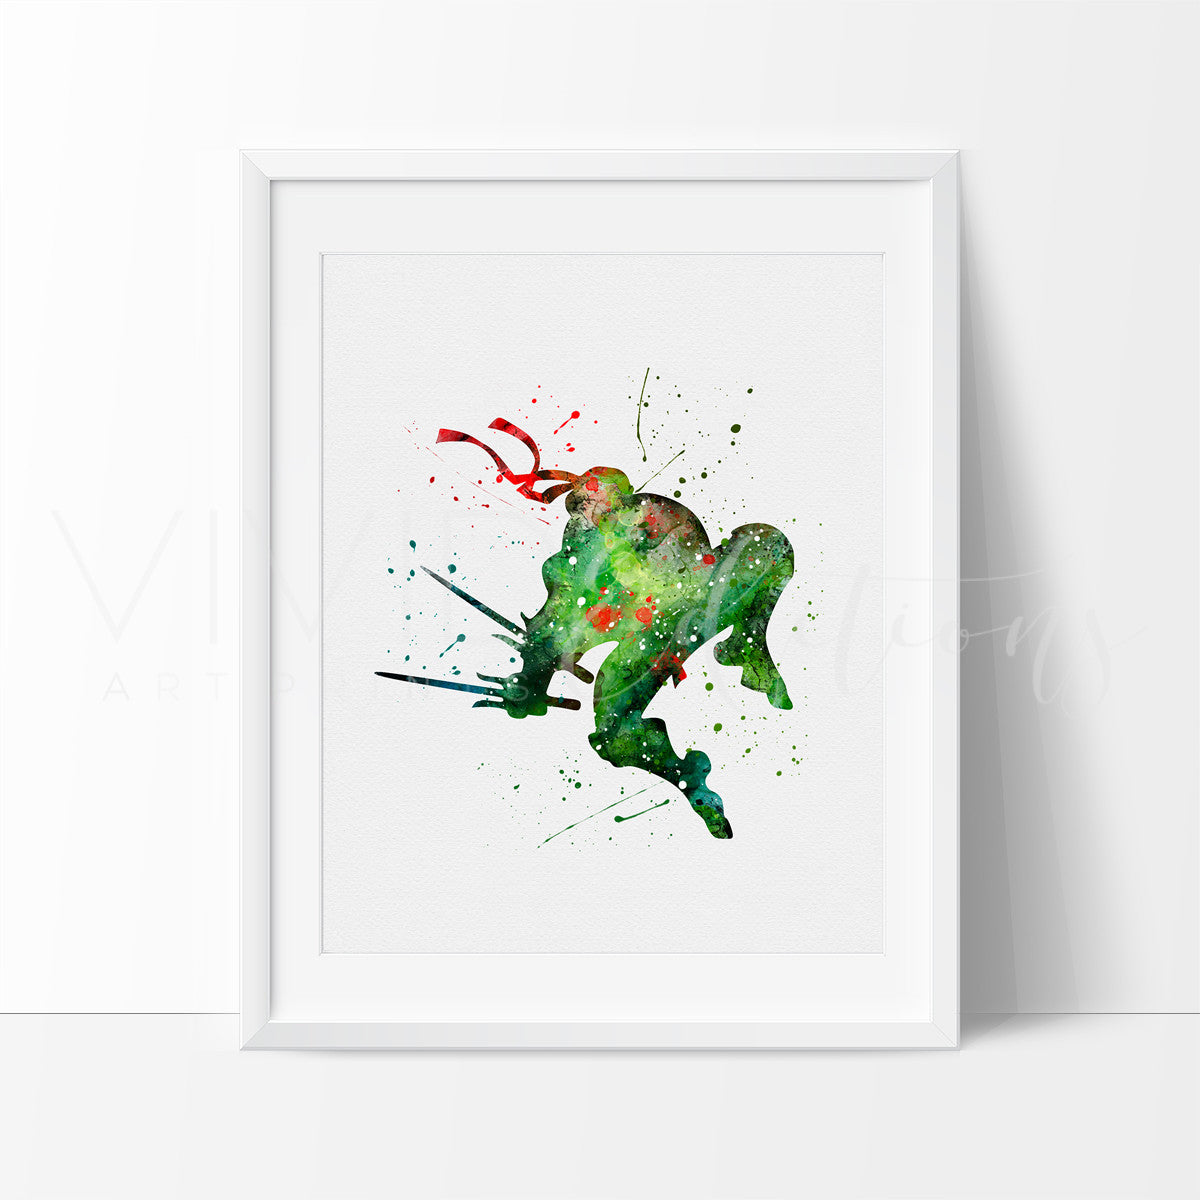 Teenage Mutant Ninja Turtles - Raphael Watercolor Art Print Art Print - VIVIDEDITIONS